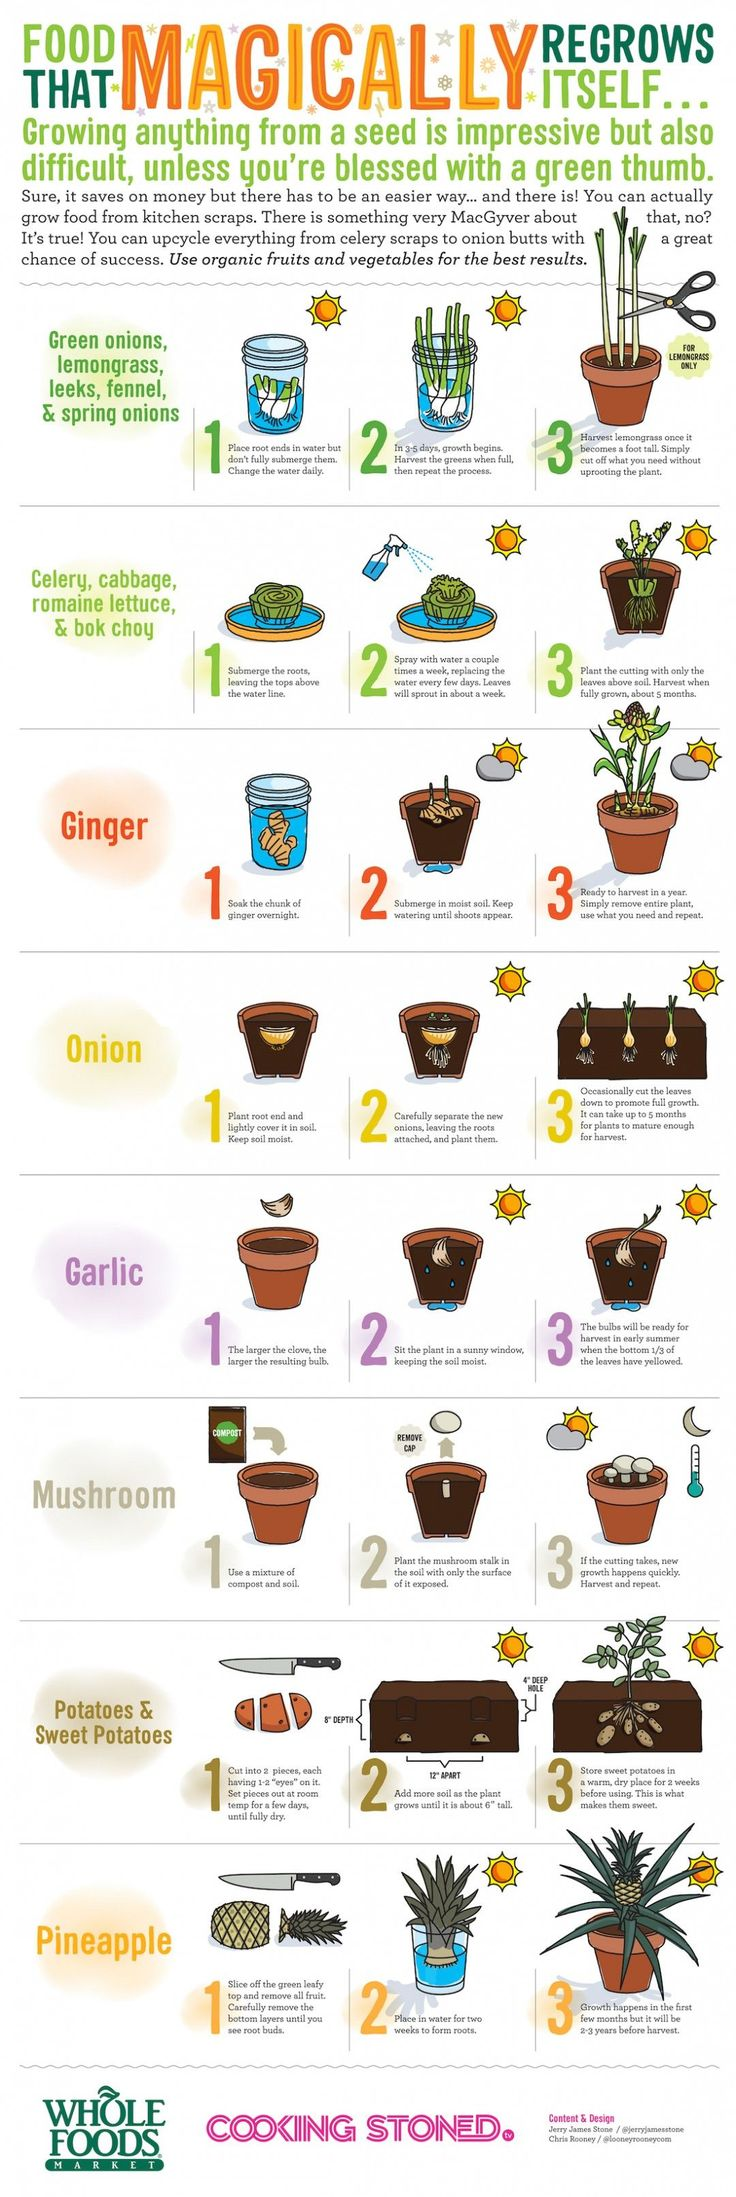 25+ Plants That You Can Regrow From Your Kitchen Scraps